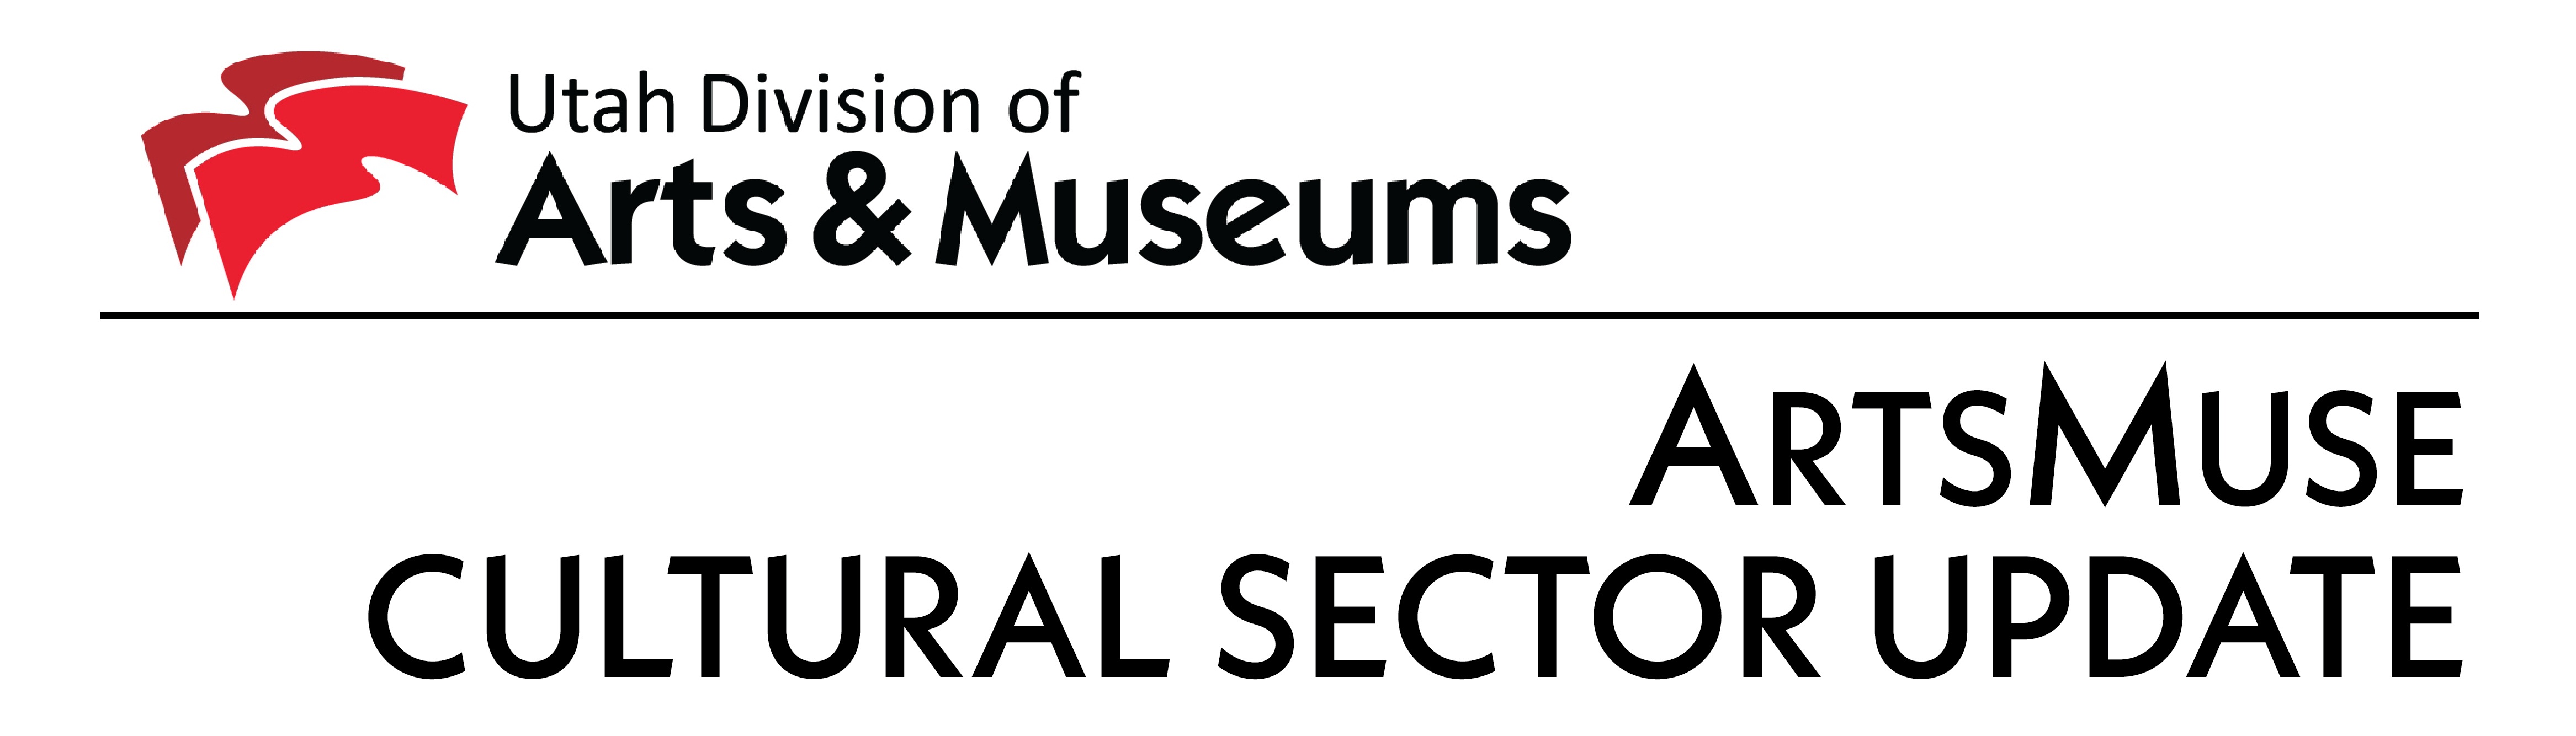 Utah Division of Arts and Museums ArtsMuse Cultural Sector Update.